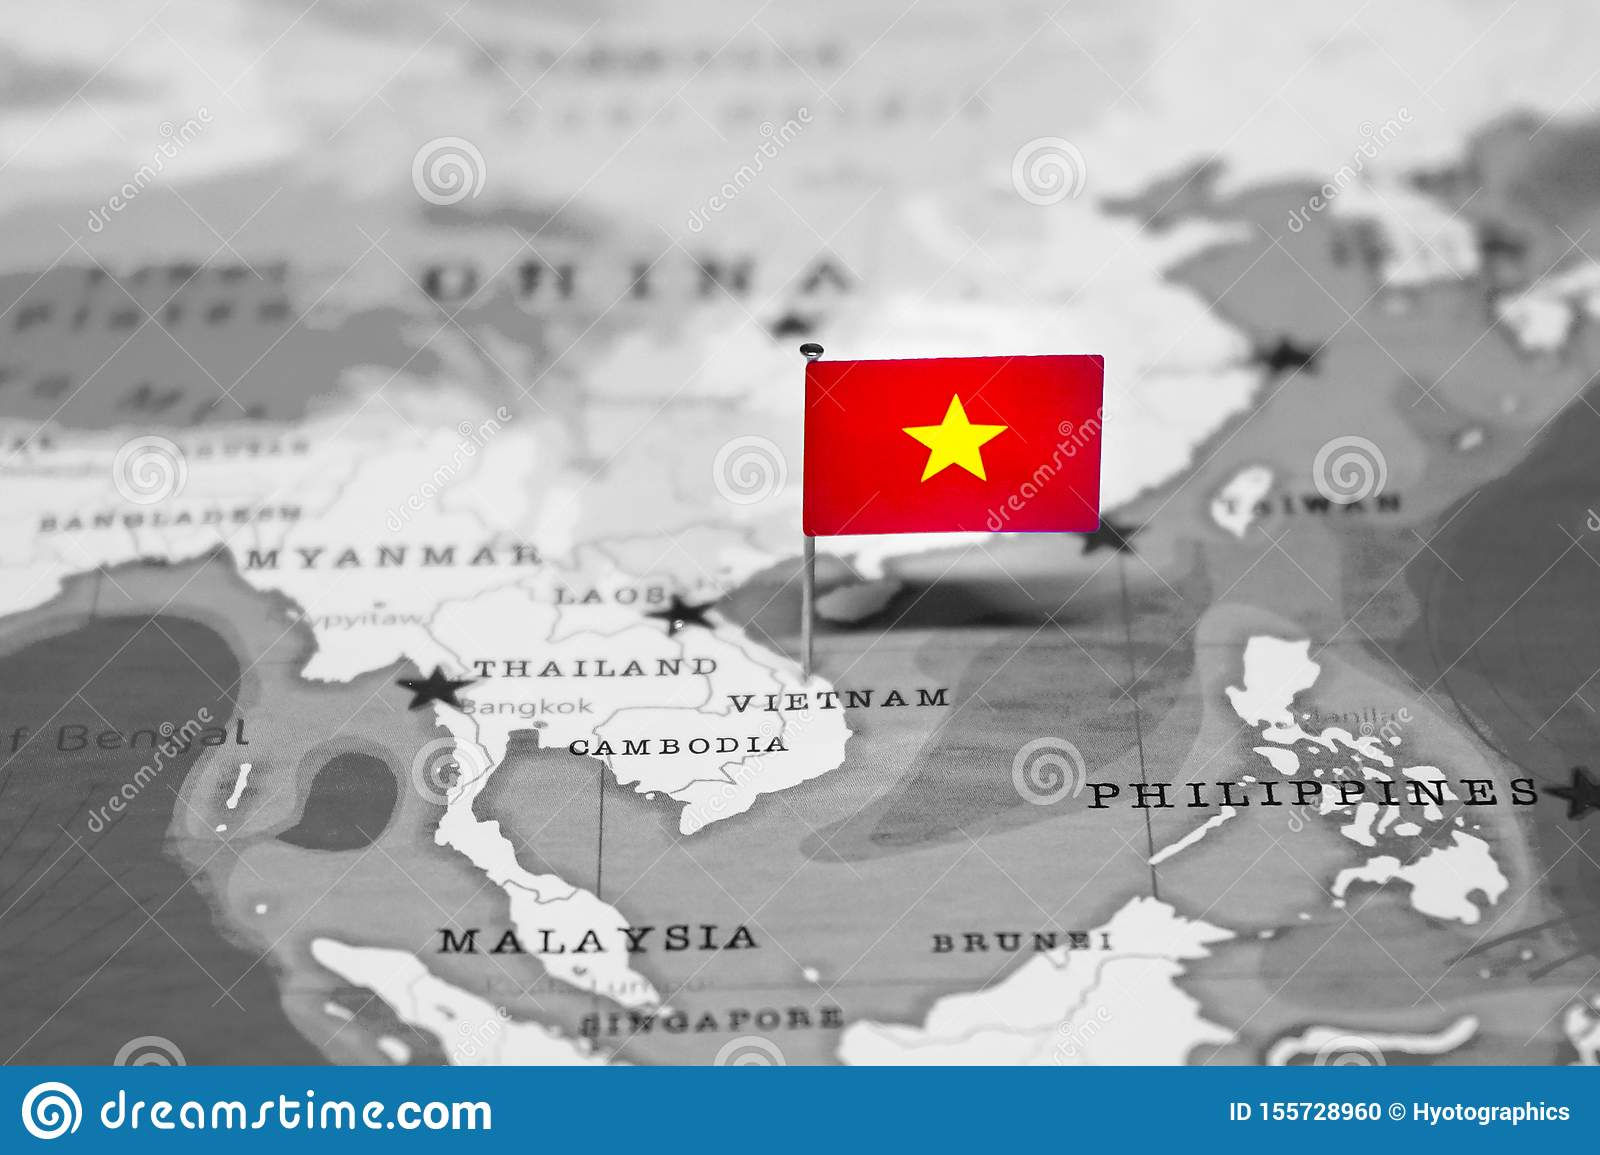 The Flag Of Vietnam In The World Map Stock Photo Image Of Countries Country 155728960